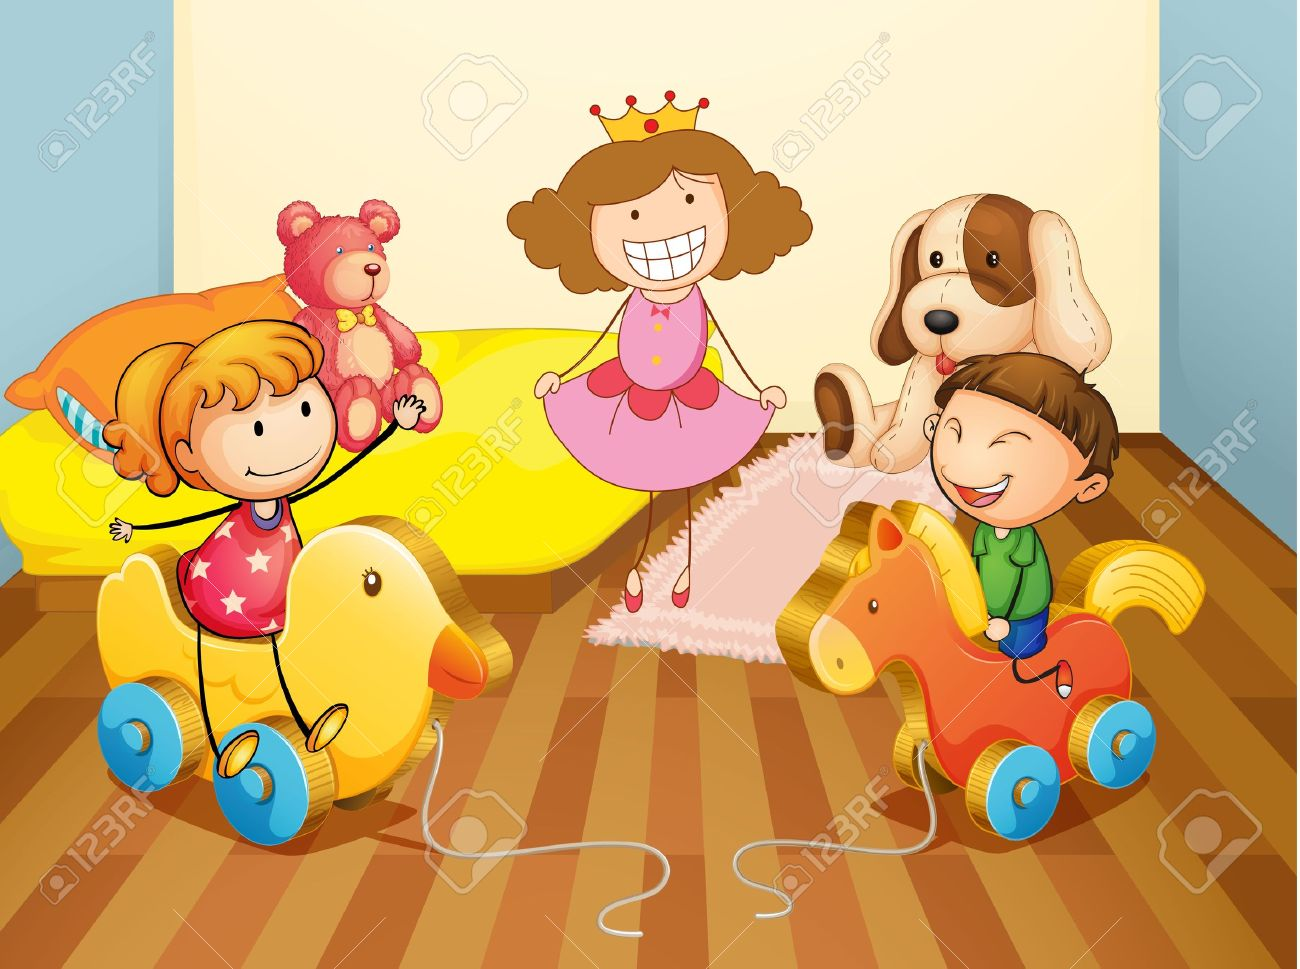 illustration of a kids in bedroom royalty free cliparts, vectors